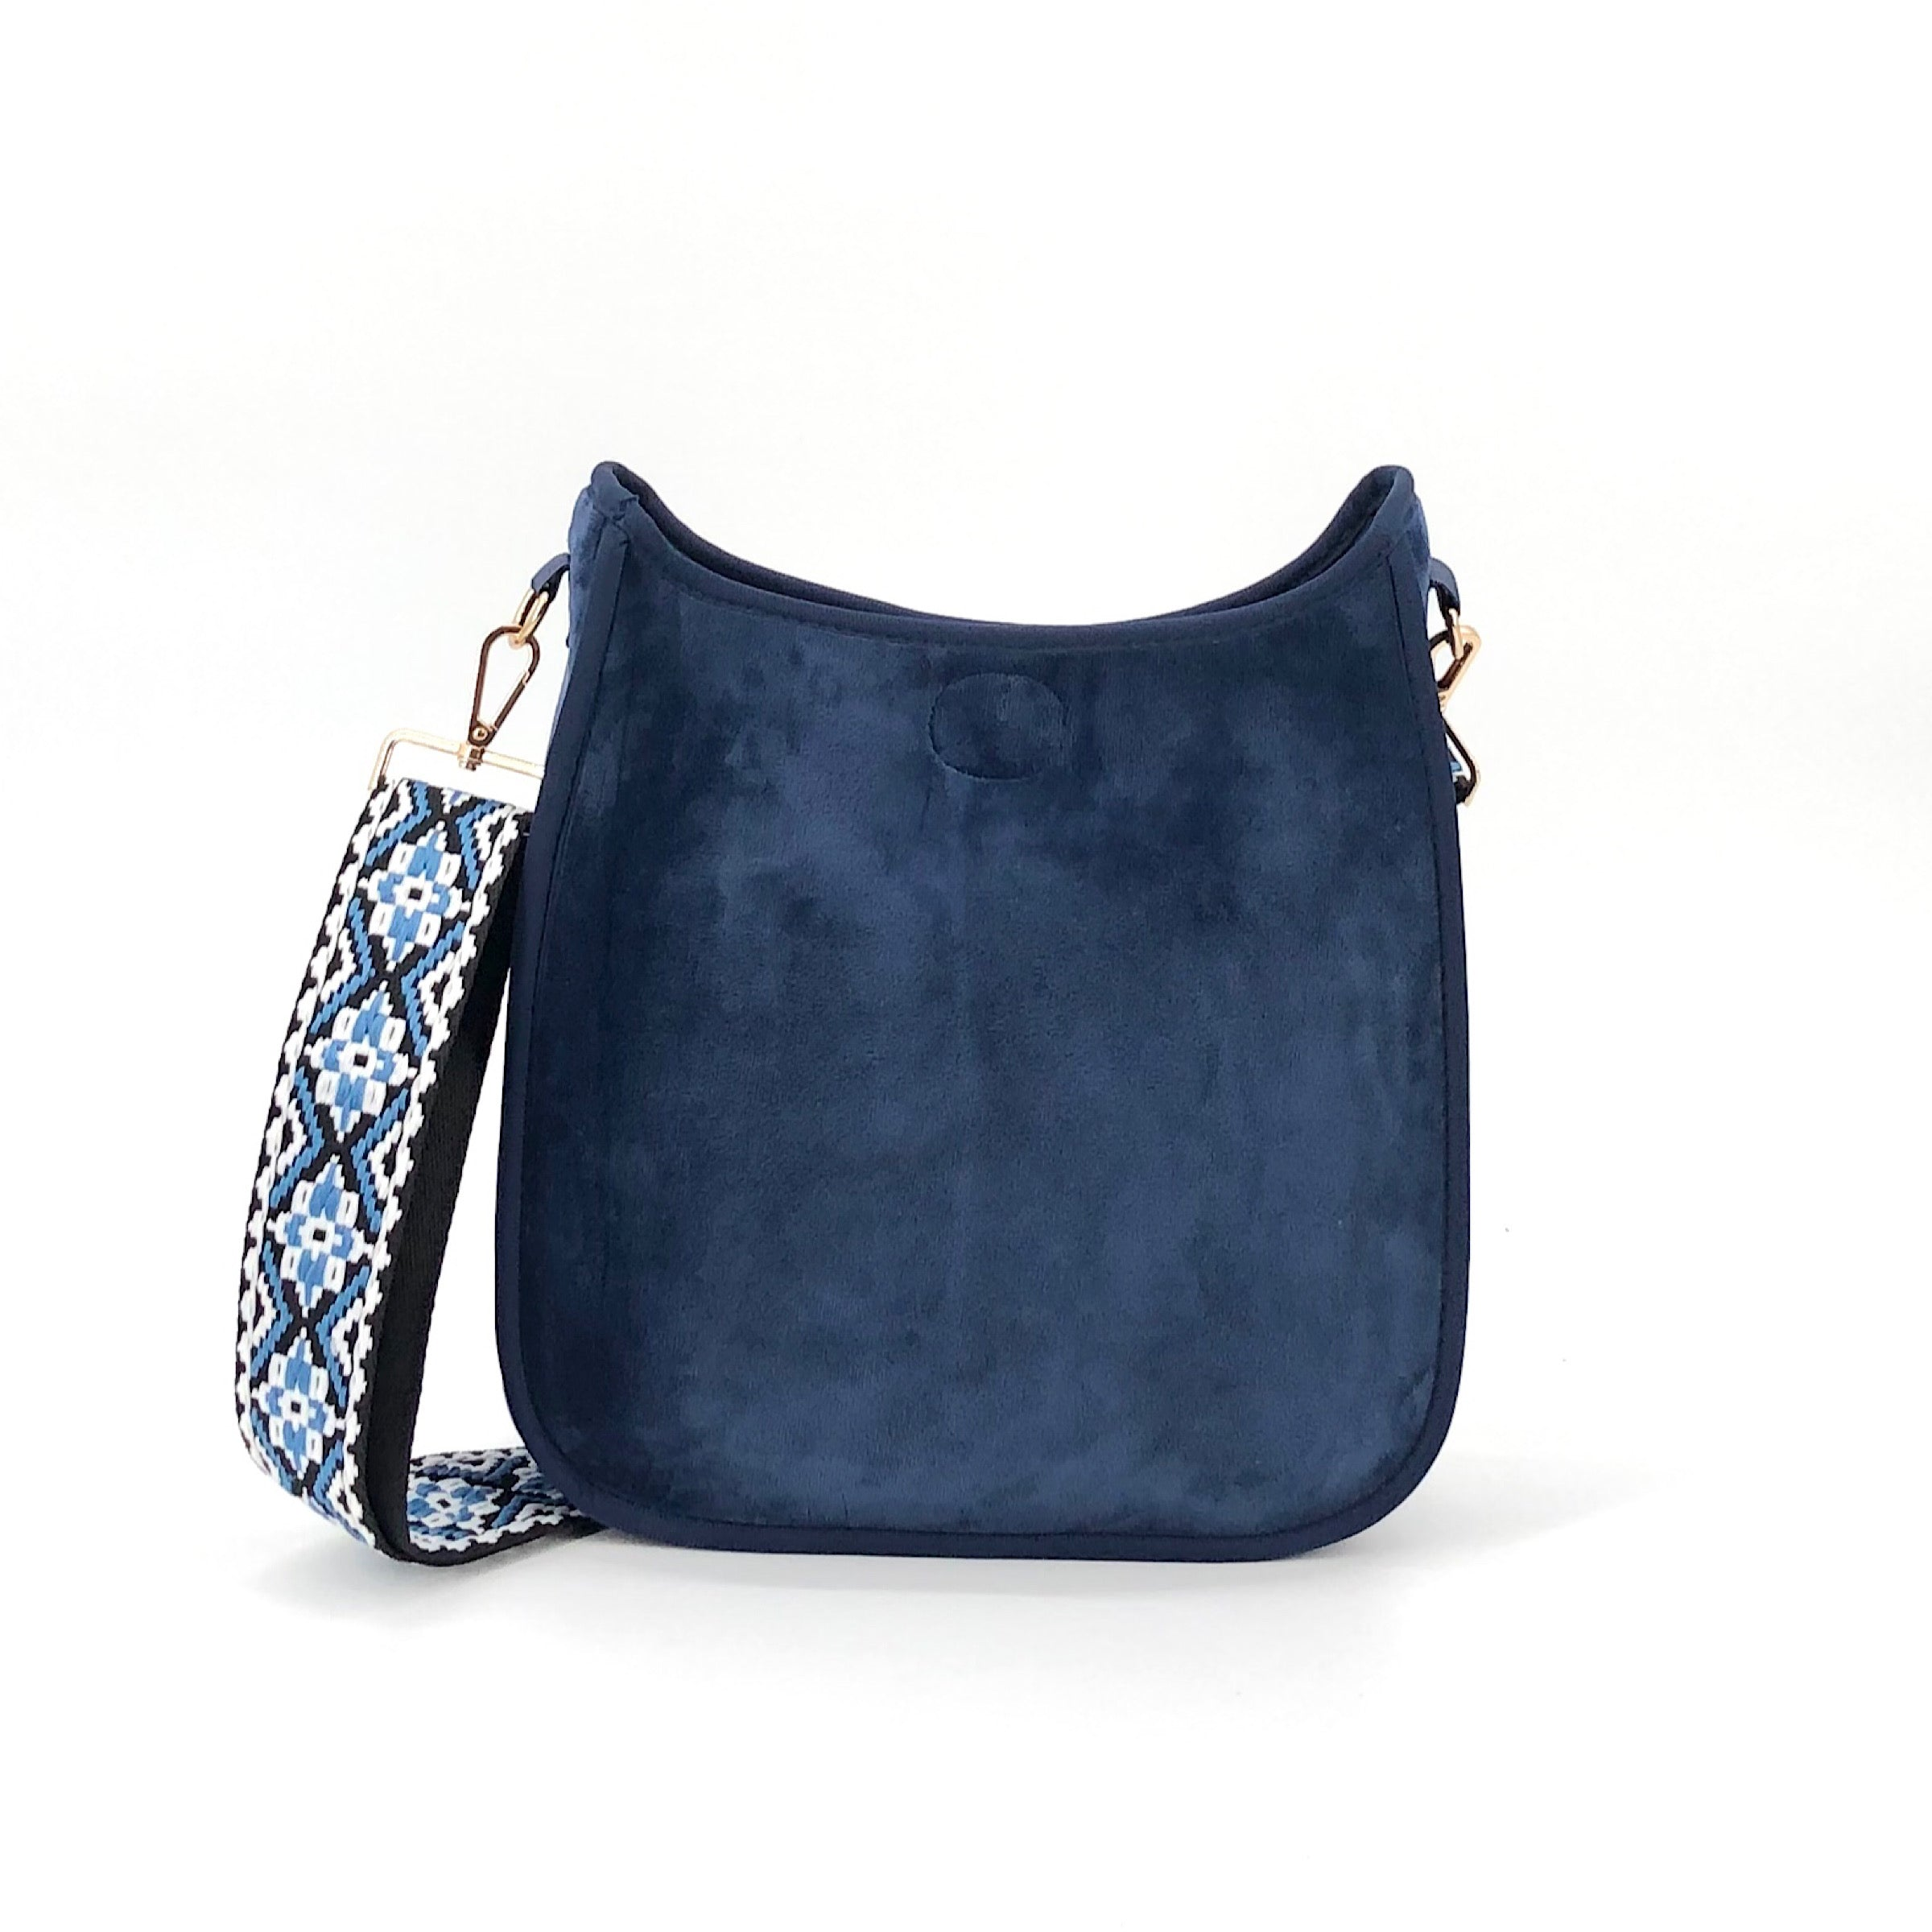 The Classic Messenger in Velvet Navy with Embroidered Strap